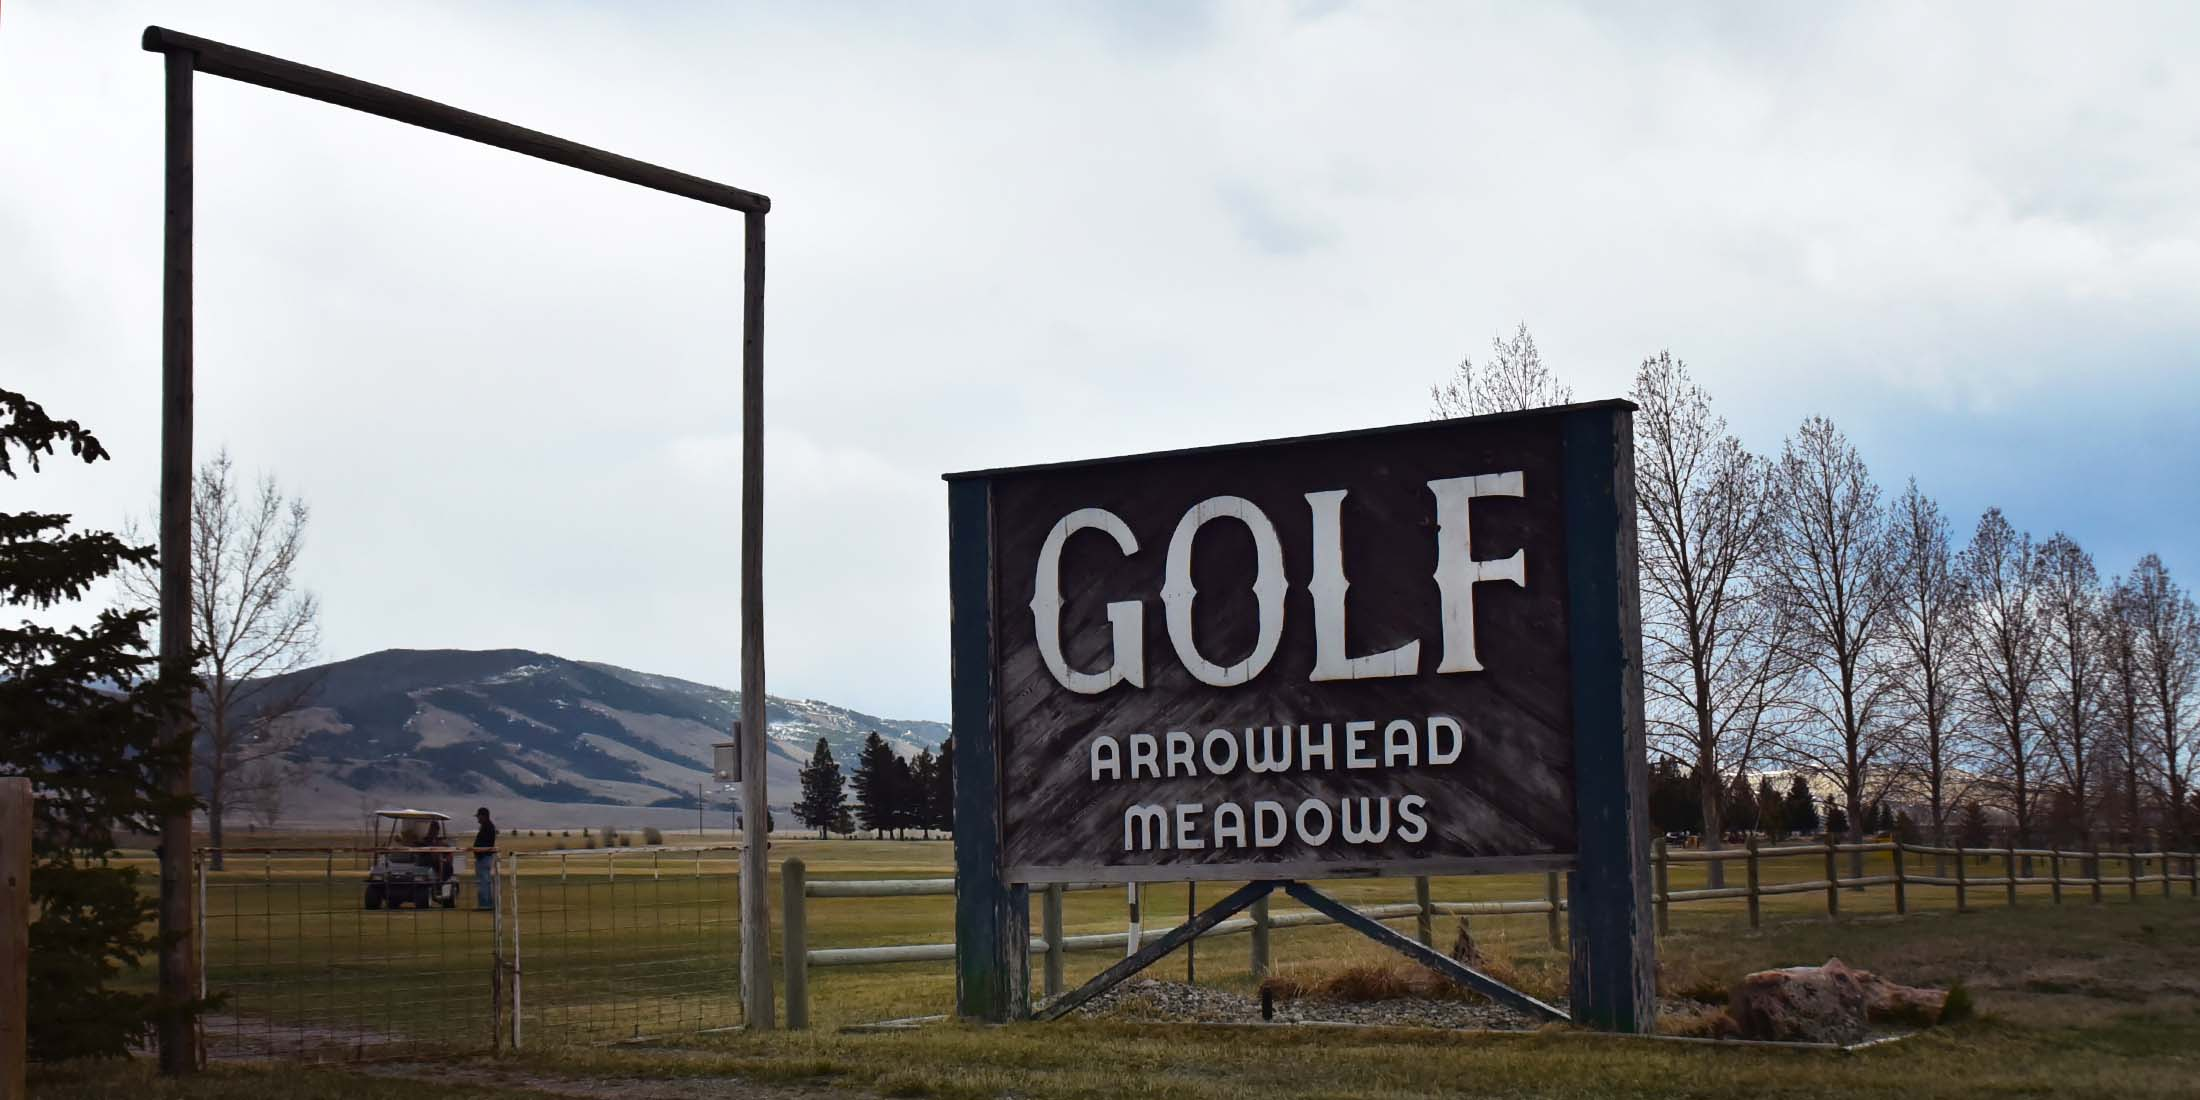 9 Hole golf course located in White SUlphur Springs, Montana on Highway 89 in Meagher County.